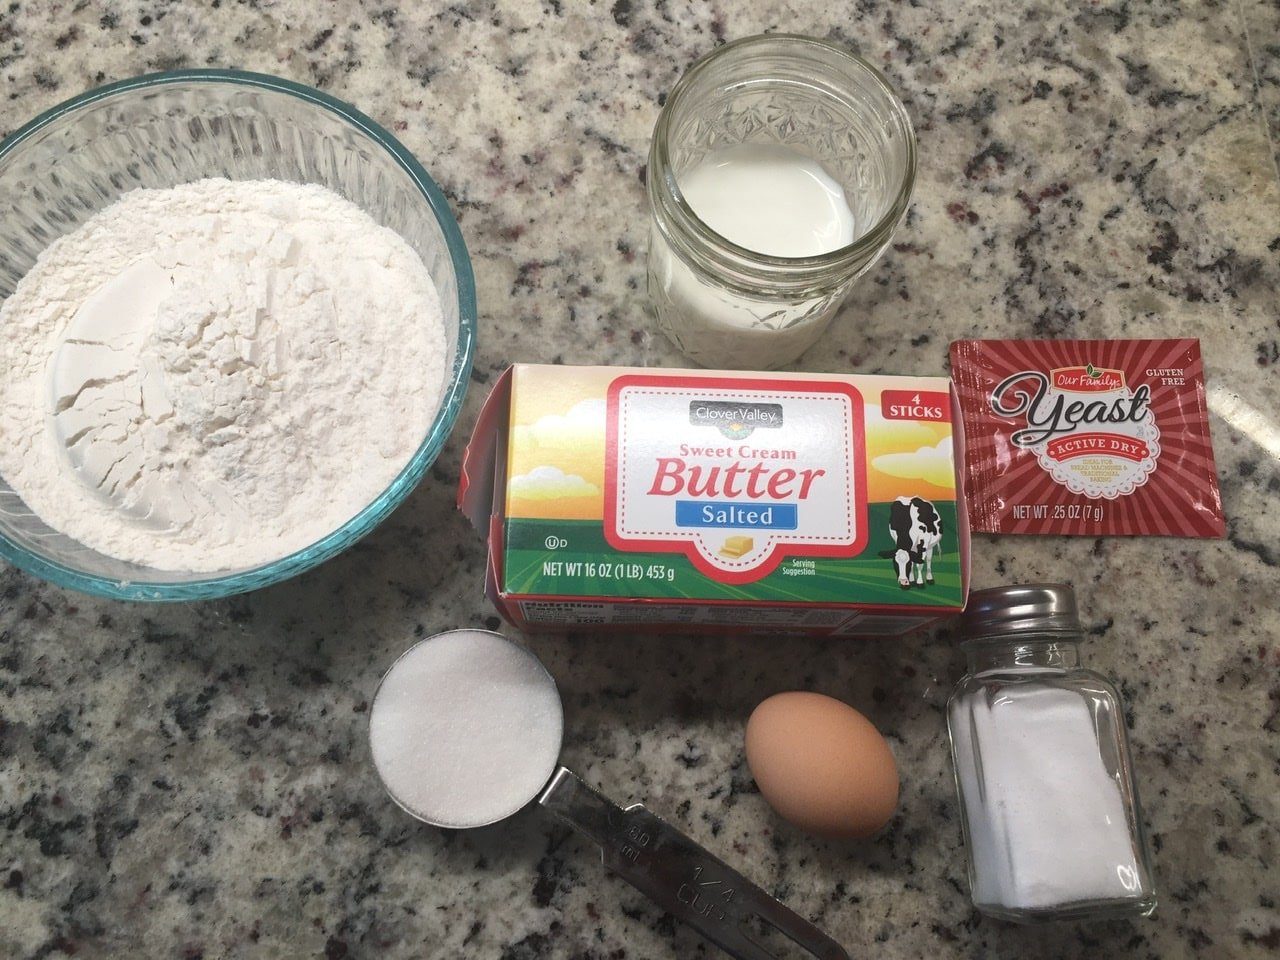 Dough ingredients including a baking powder, butter, milk, yeast, salt, and egg over a marble countertop.